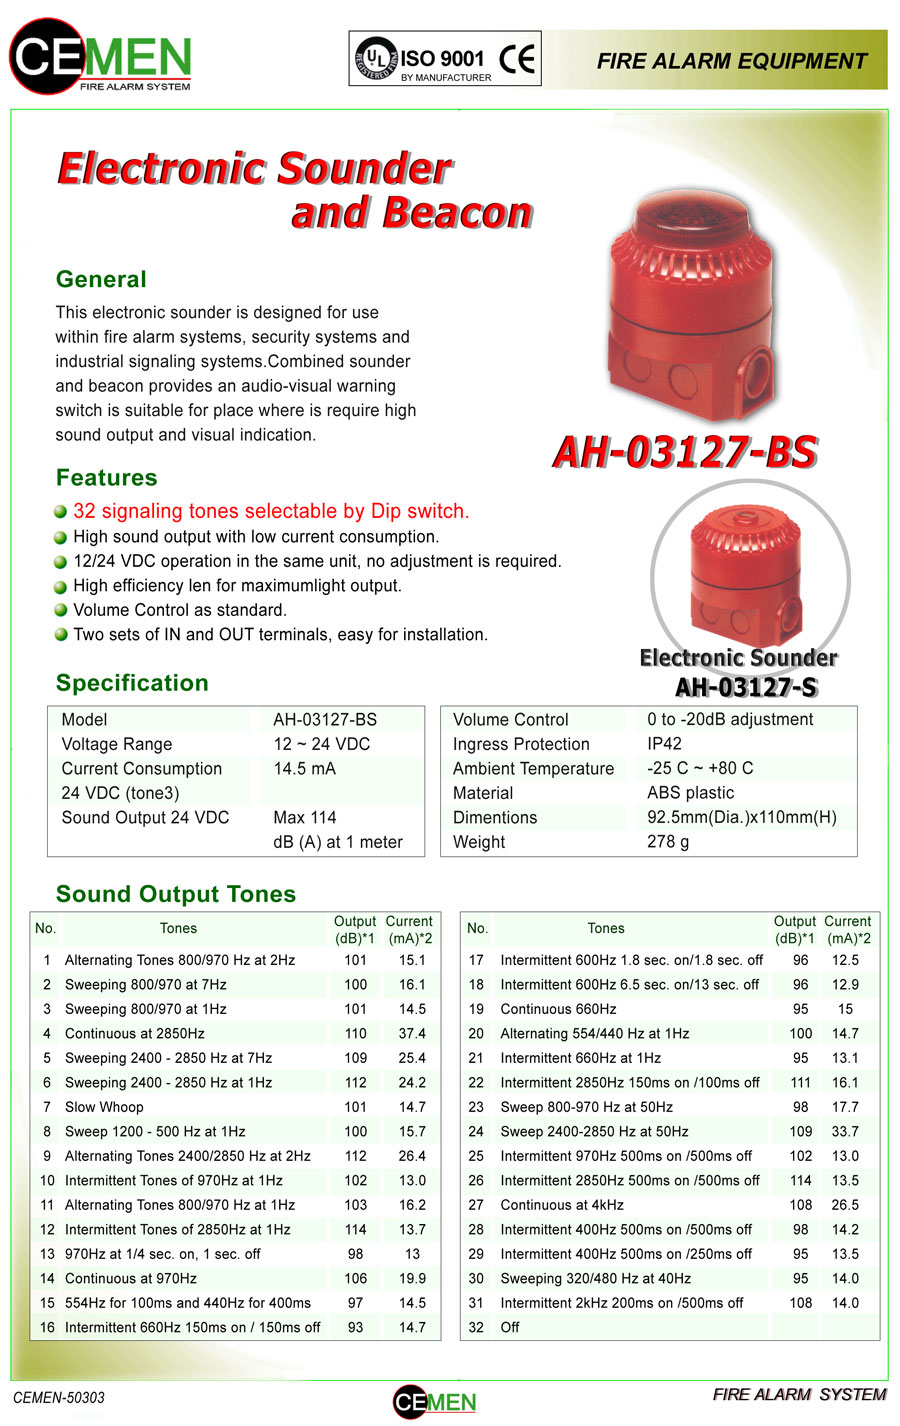 AH-03127-BS ตัวส่งสัญญาณเสียงและแสง Electronic Sounder and Beacon